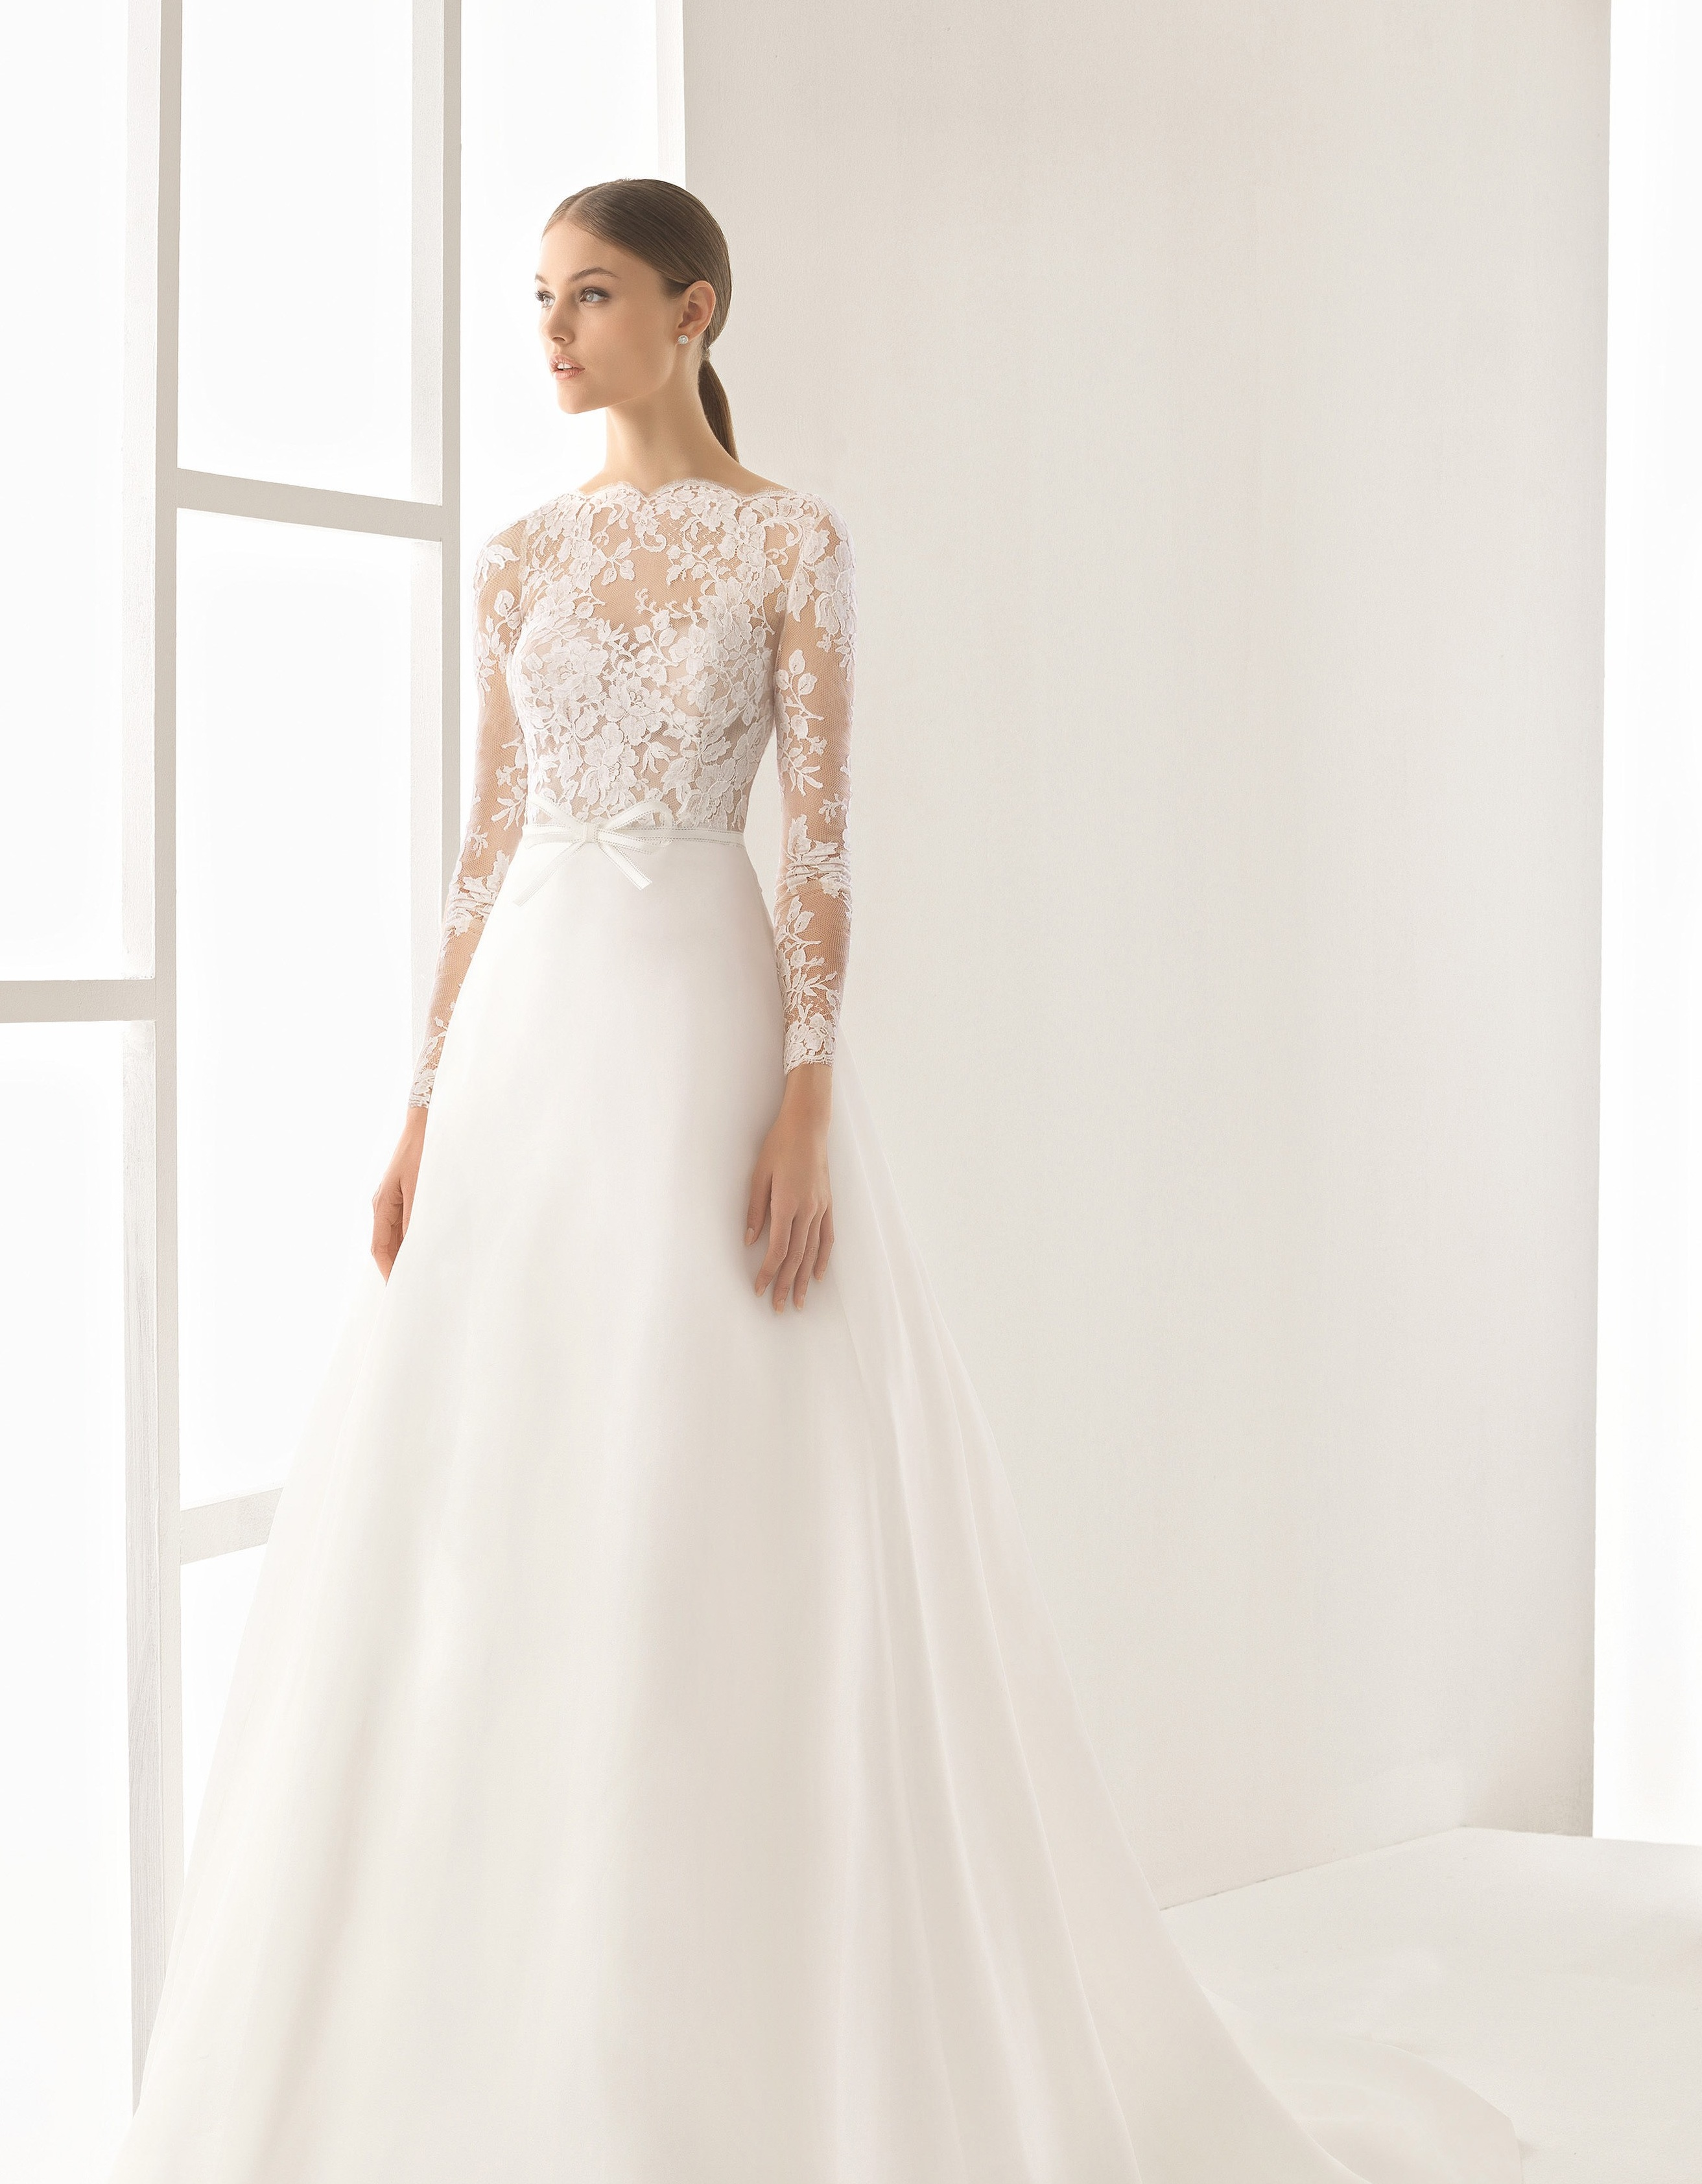 A-line wedding dress with illusion bodice and long sleeves